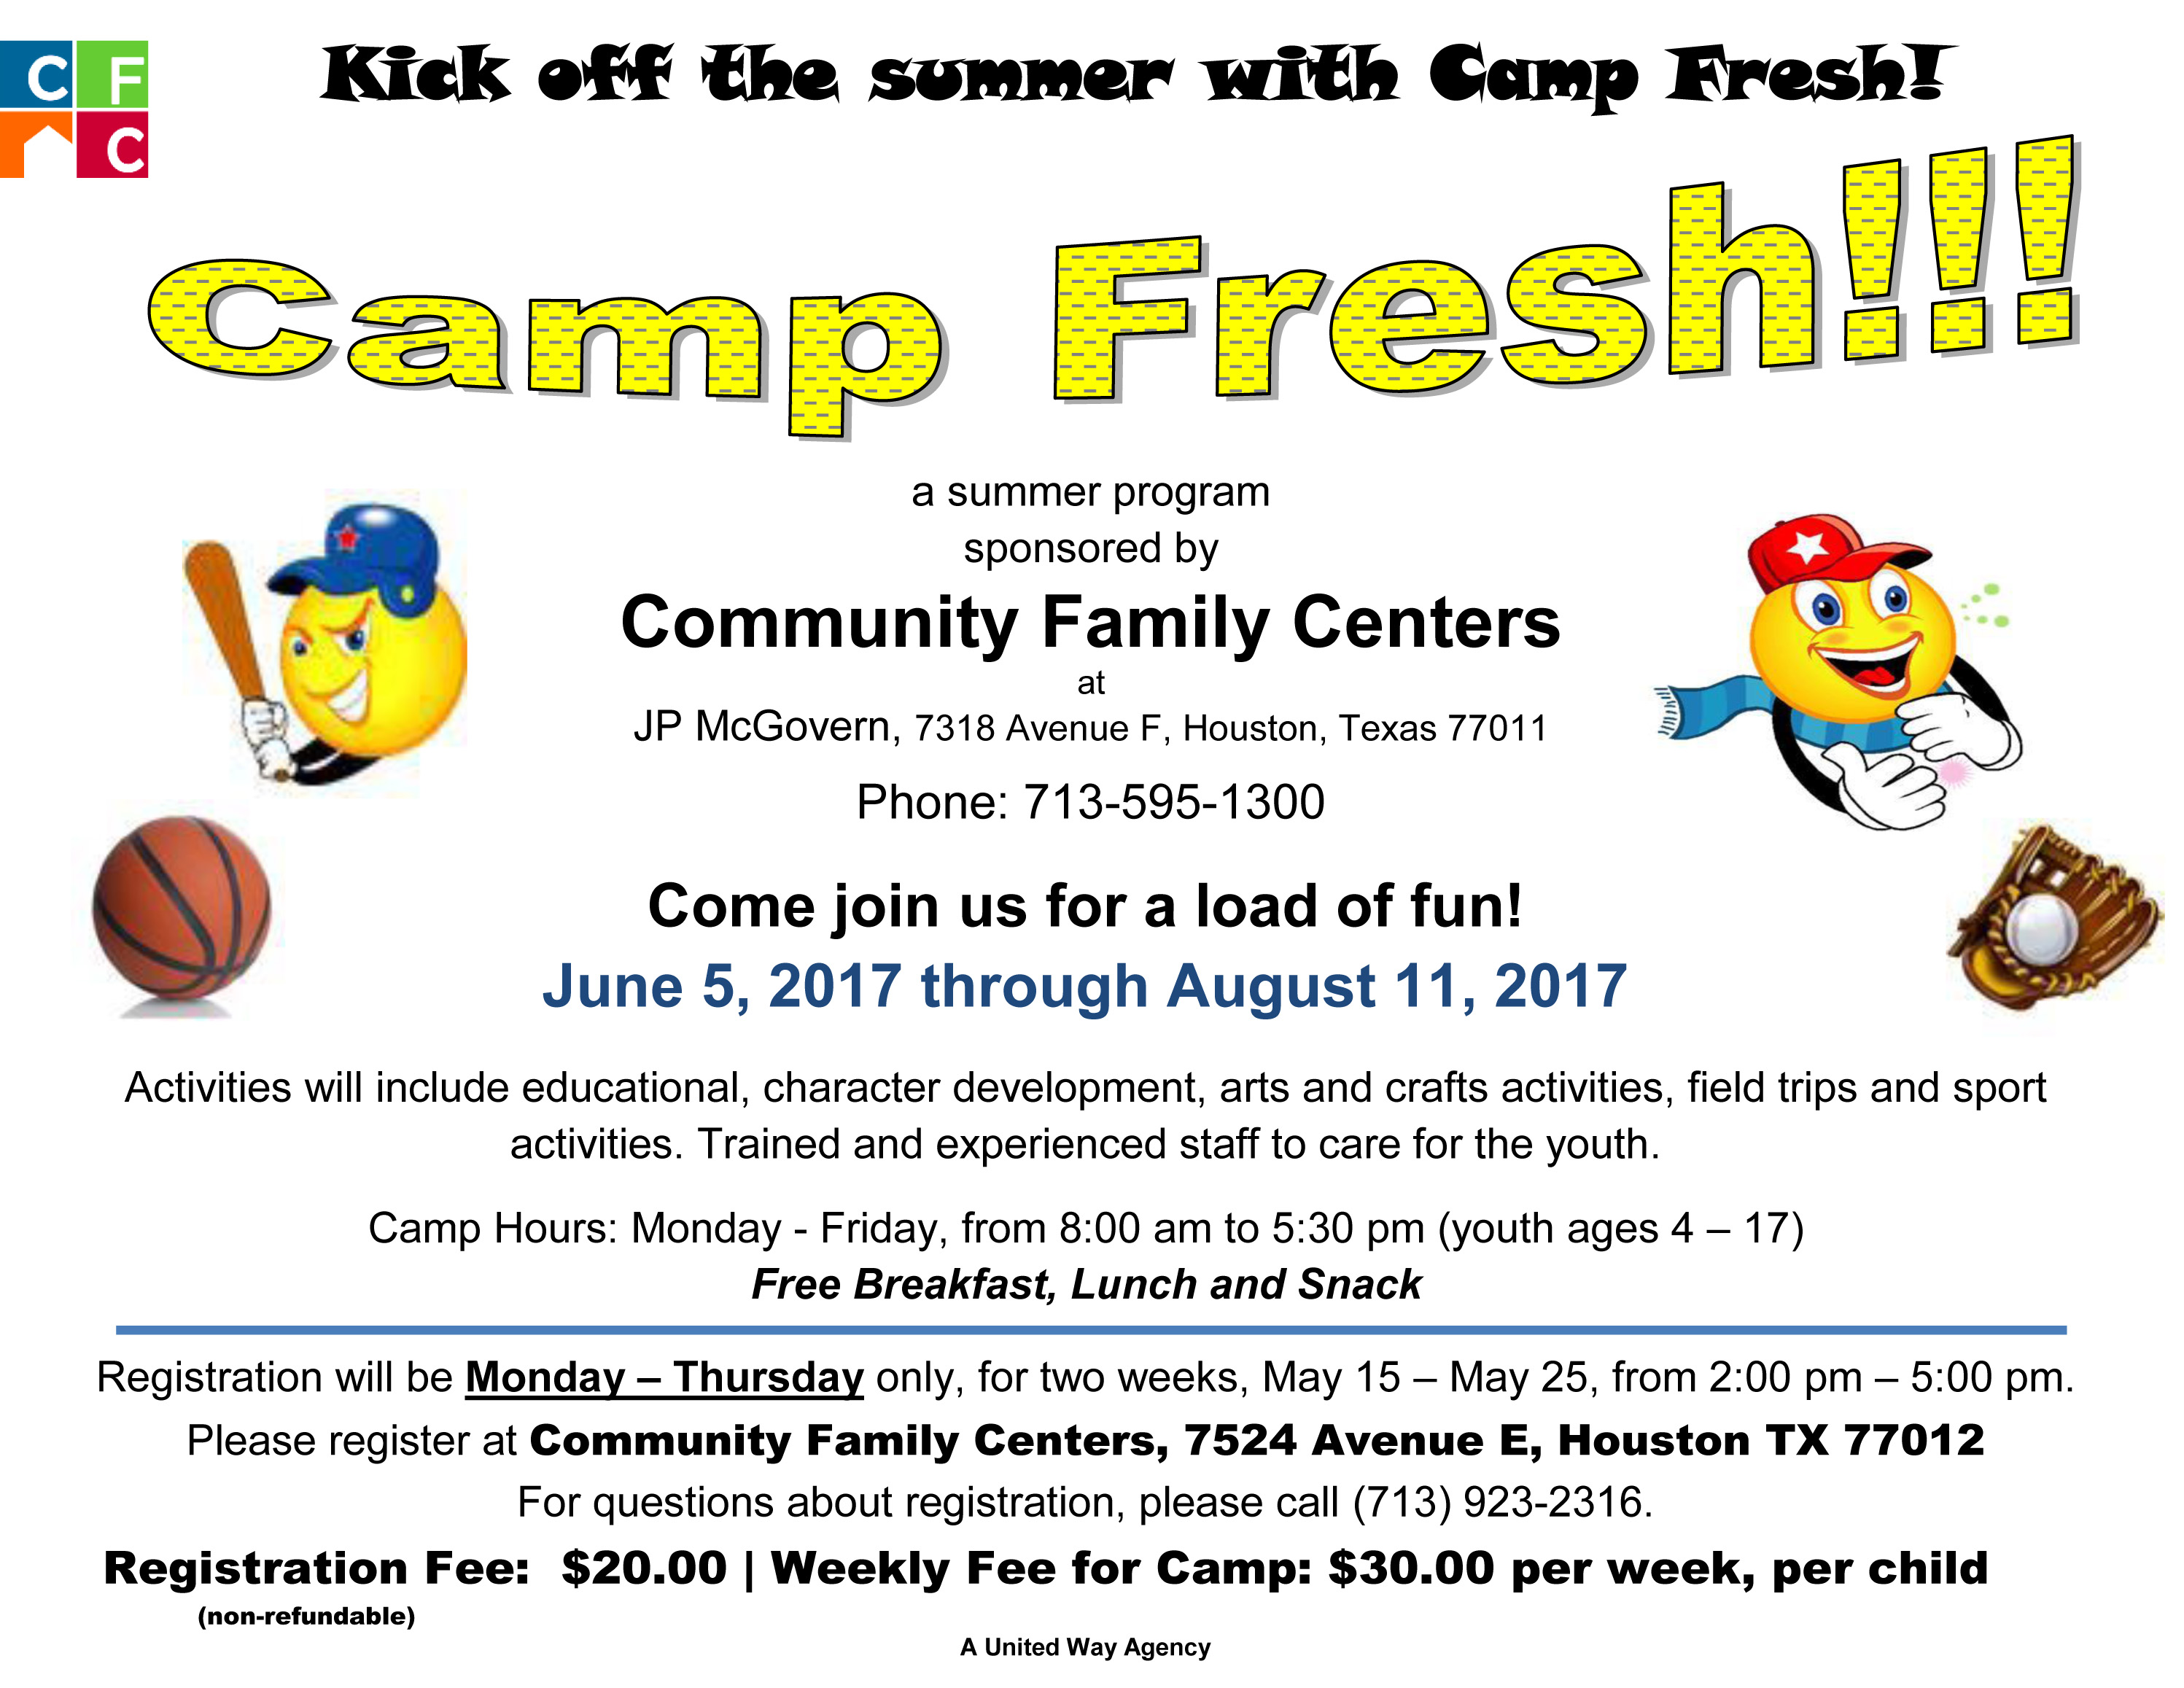 CFC's Camp Fresh